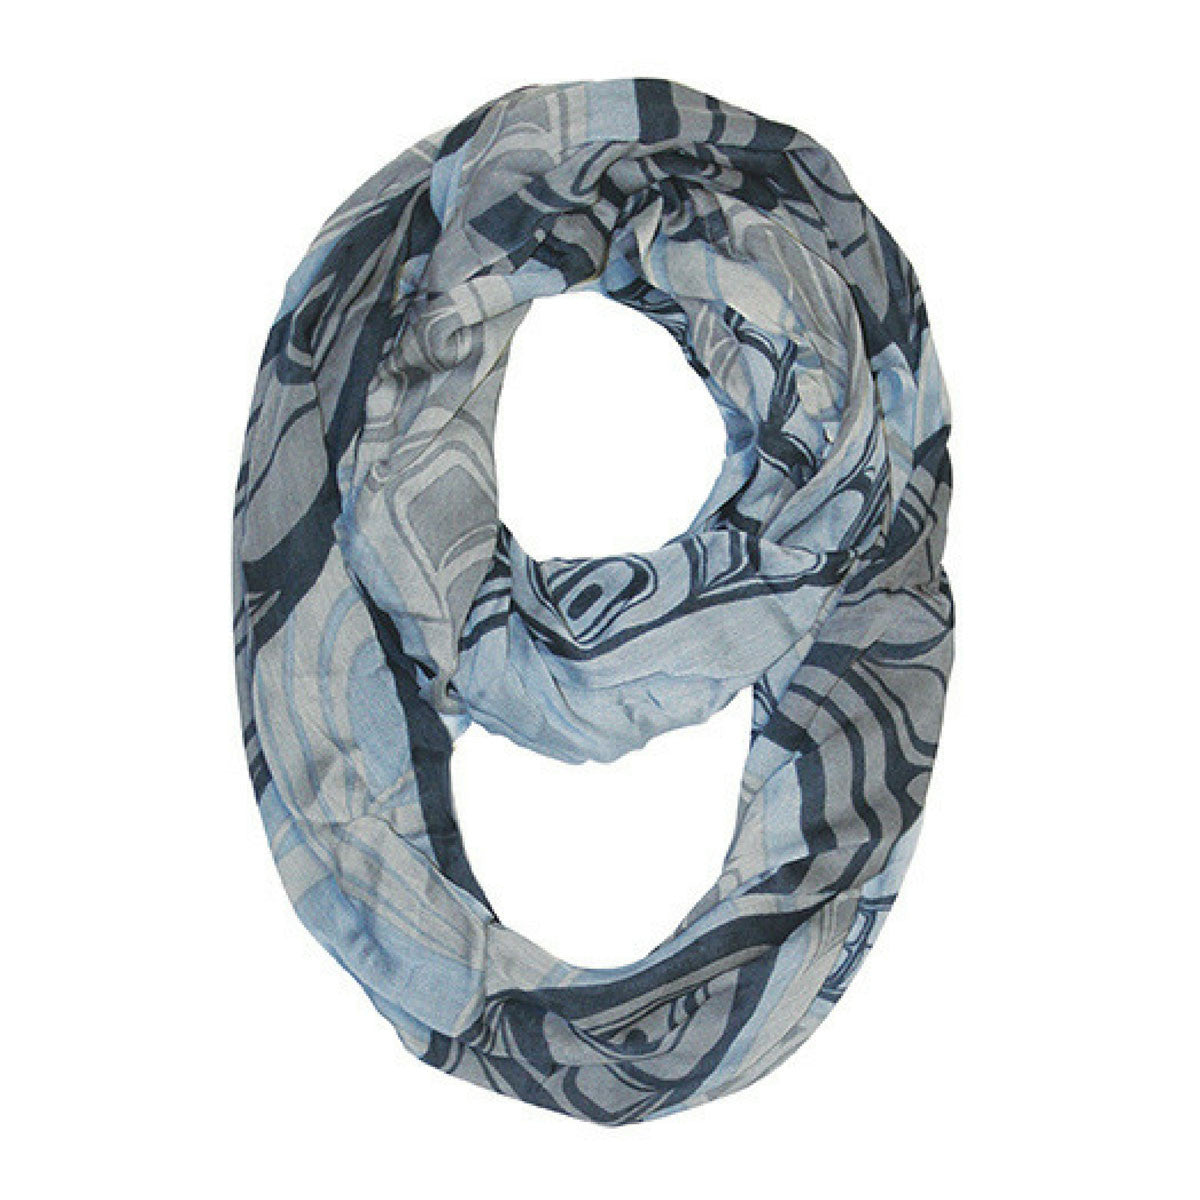 Bamboo Circle Scarf - Two Ravens